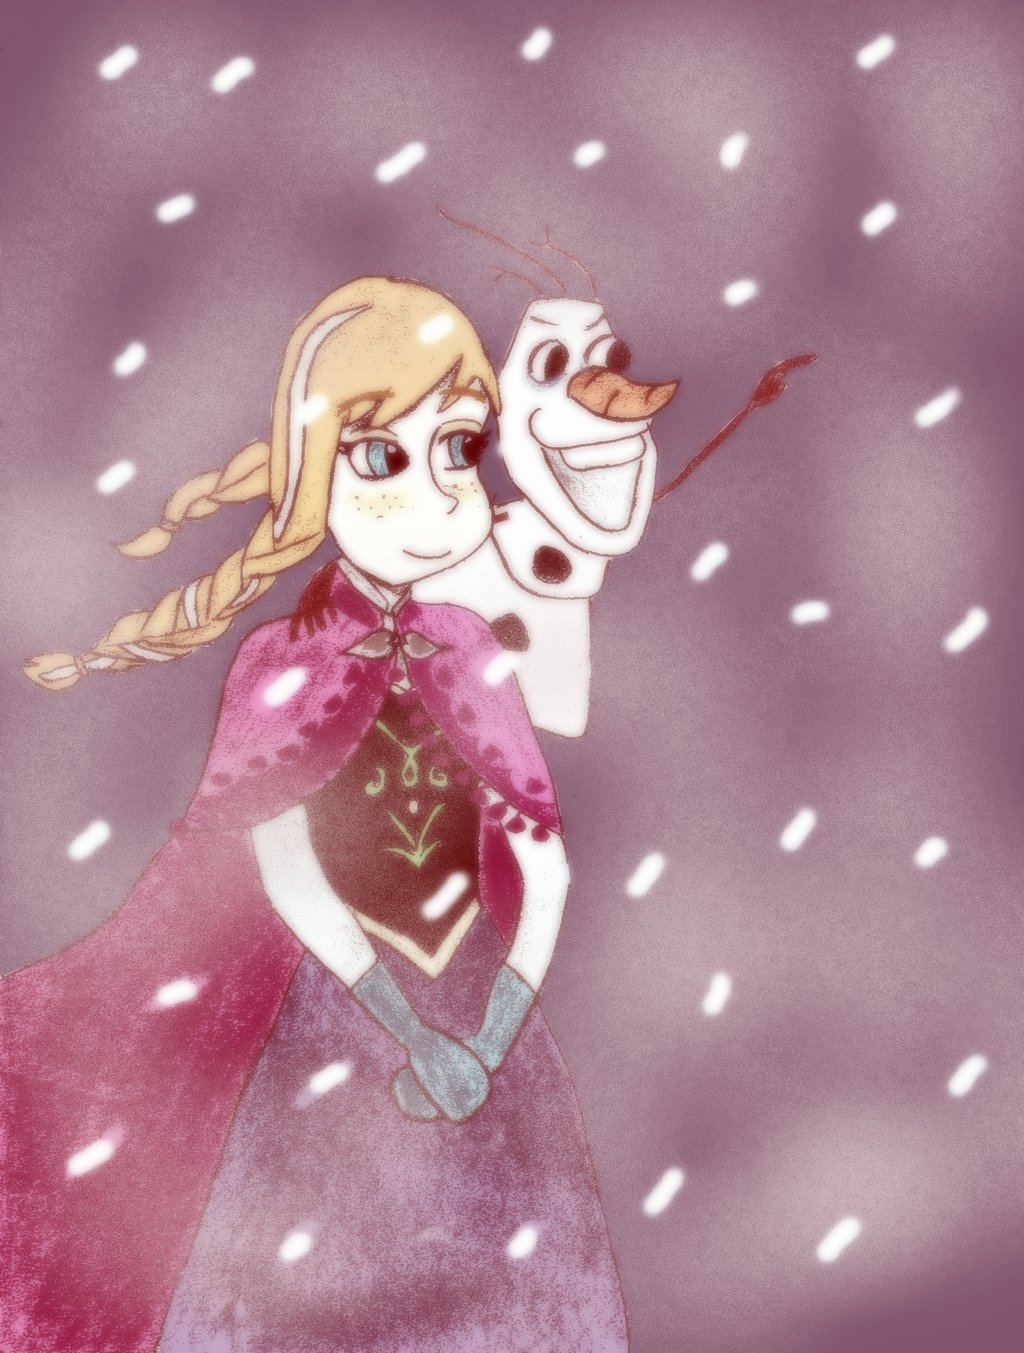 Anna and olaf frozen fan art 35501066 fanpop - Olaf and anna ...